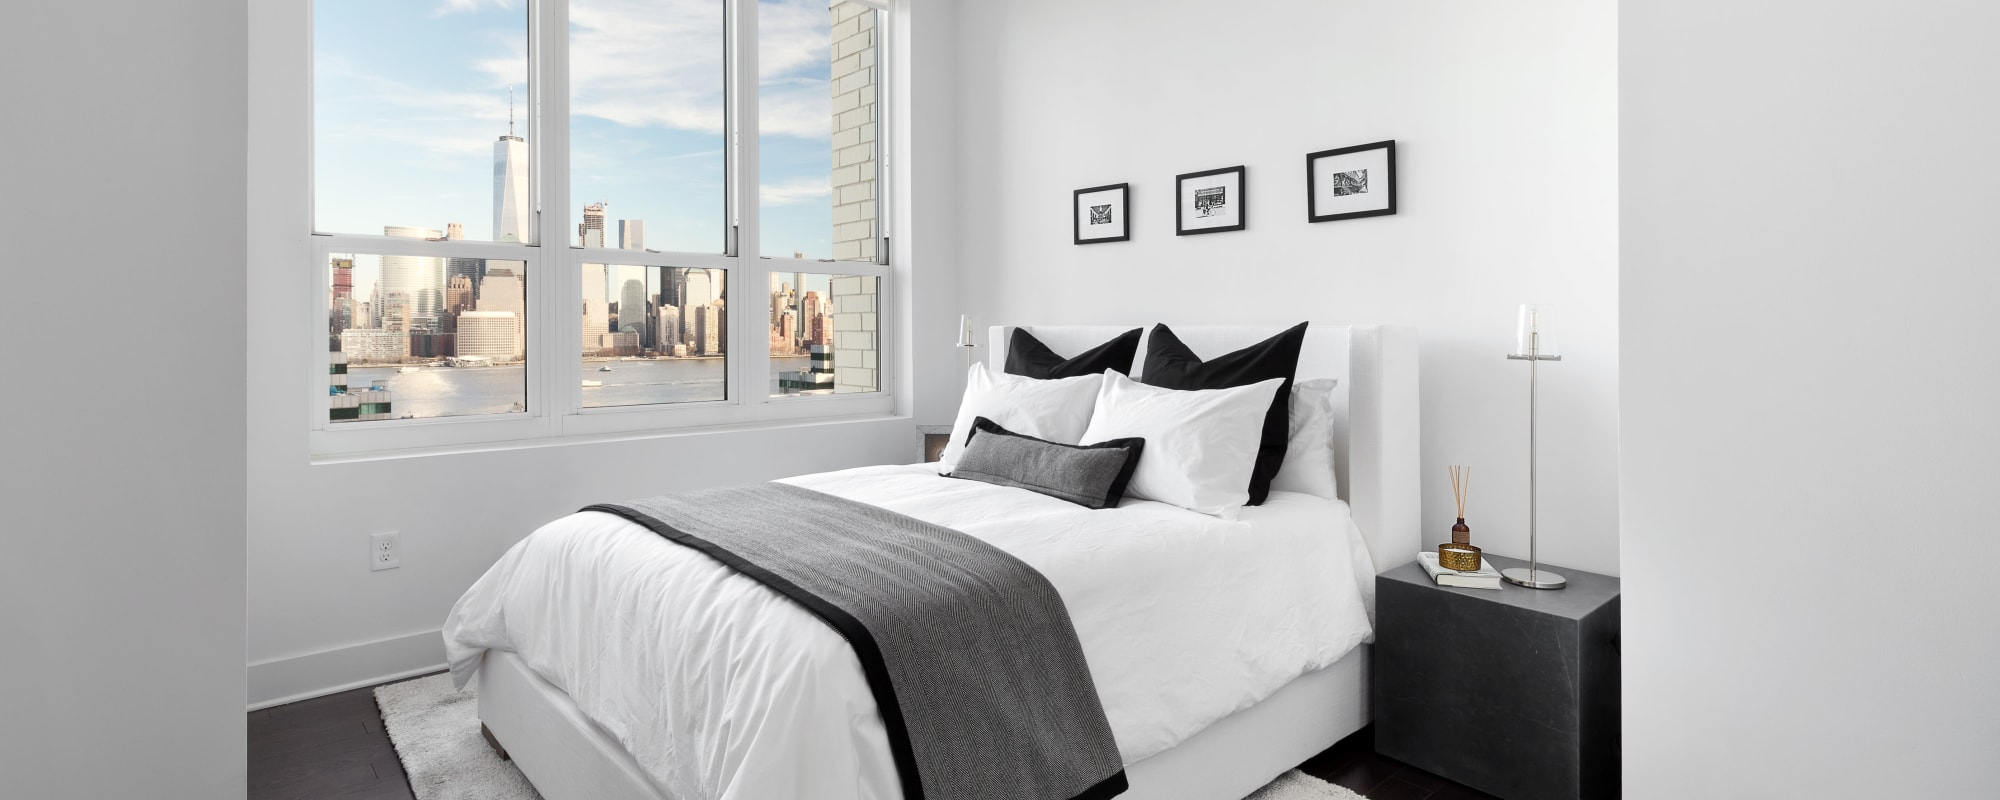 Master bedroom at Trump Bay Street in Jersey City, New Jersey